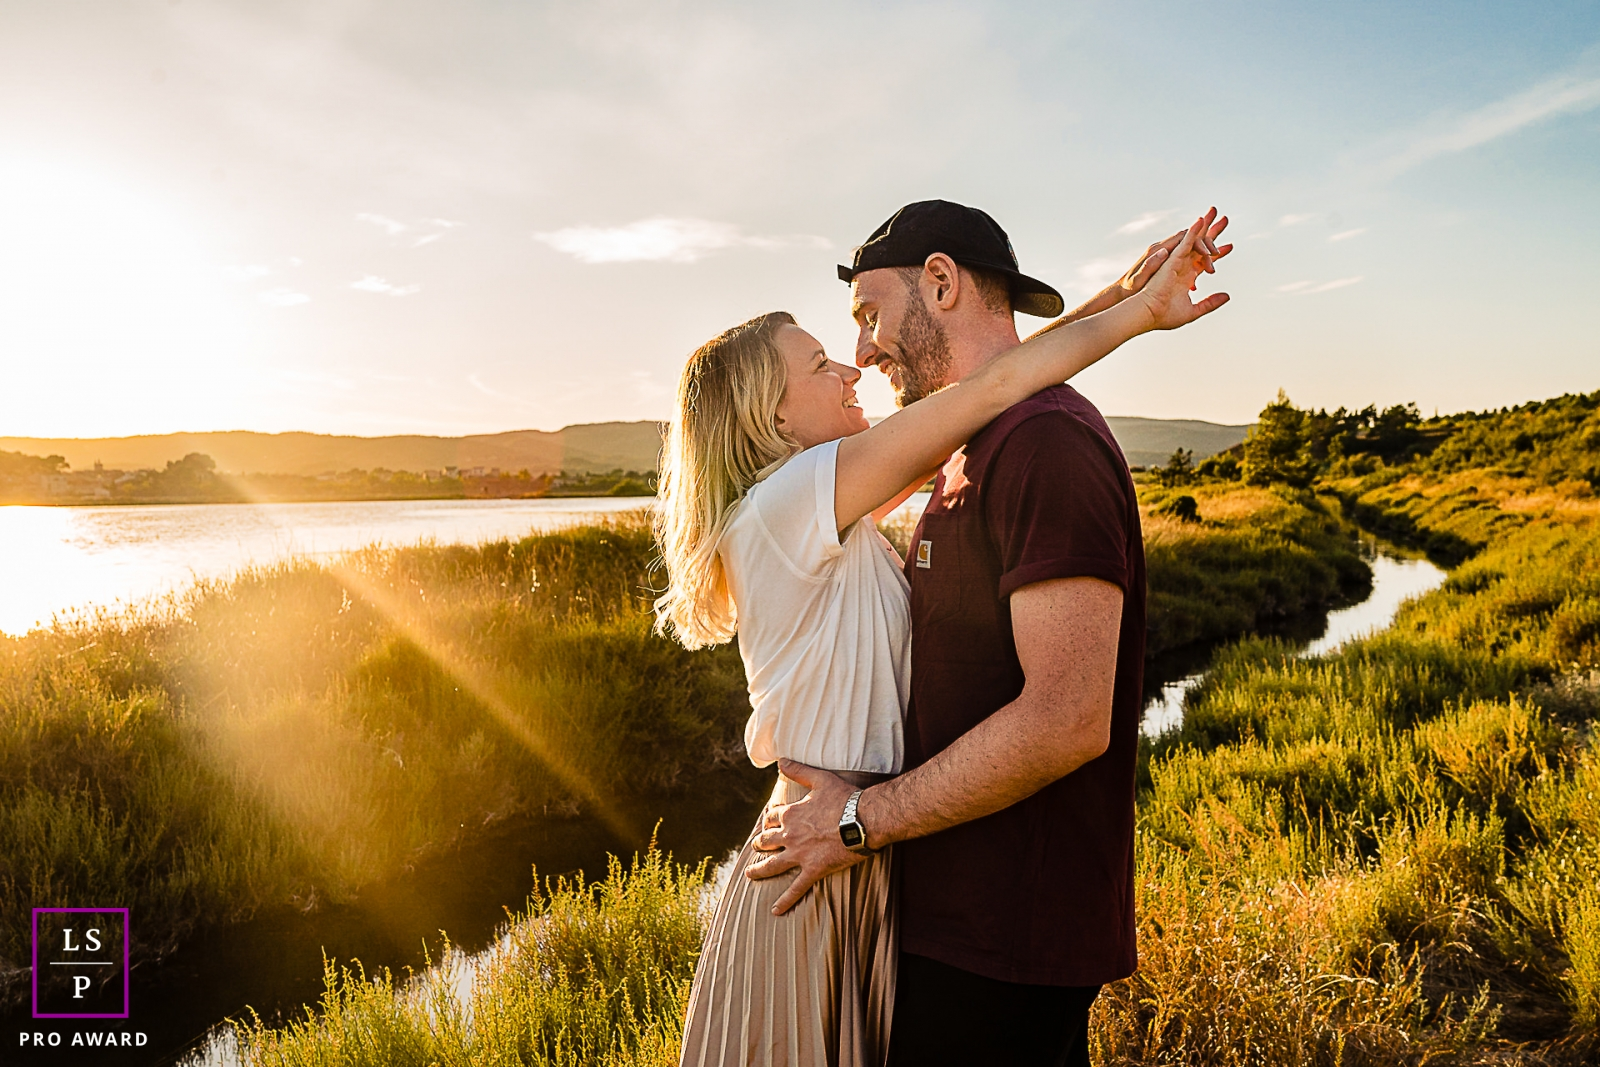 Perpignan Pyrenees-Orientales lifestyle couple photography session during sunset